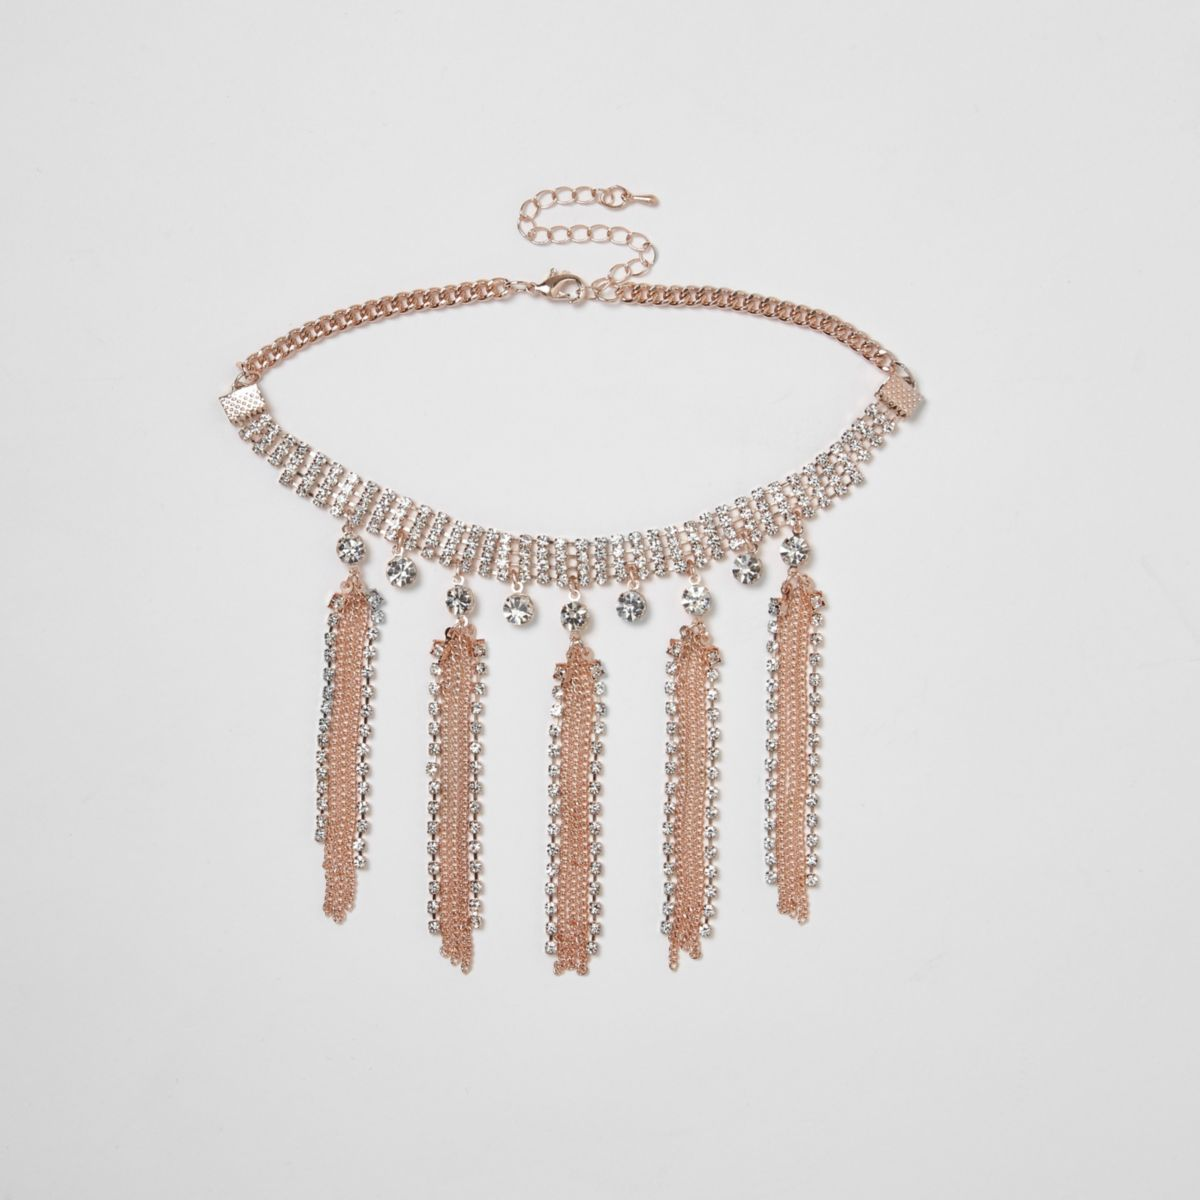 Rose gold tone diamante tassel choker